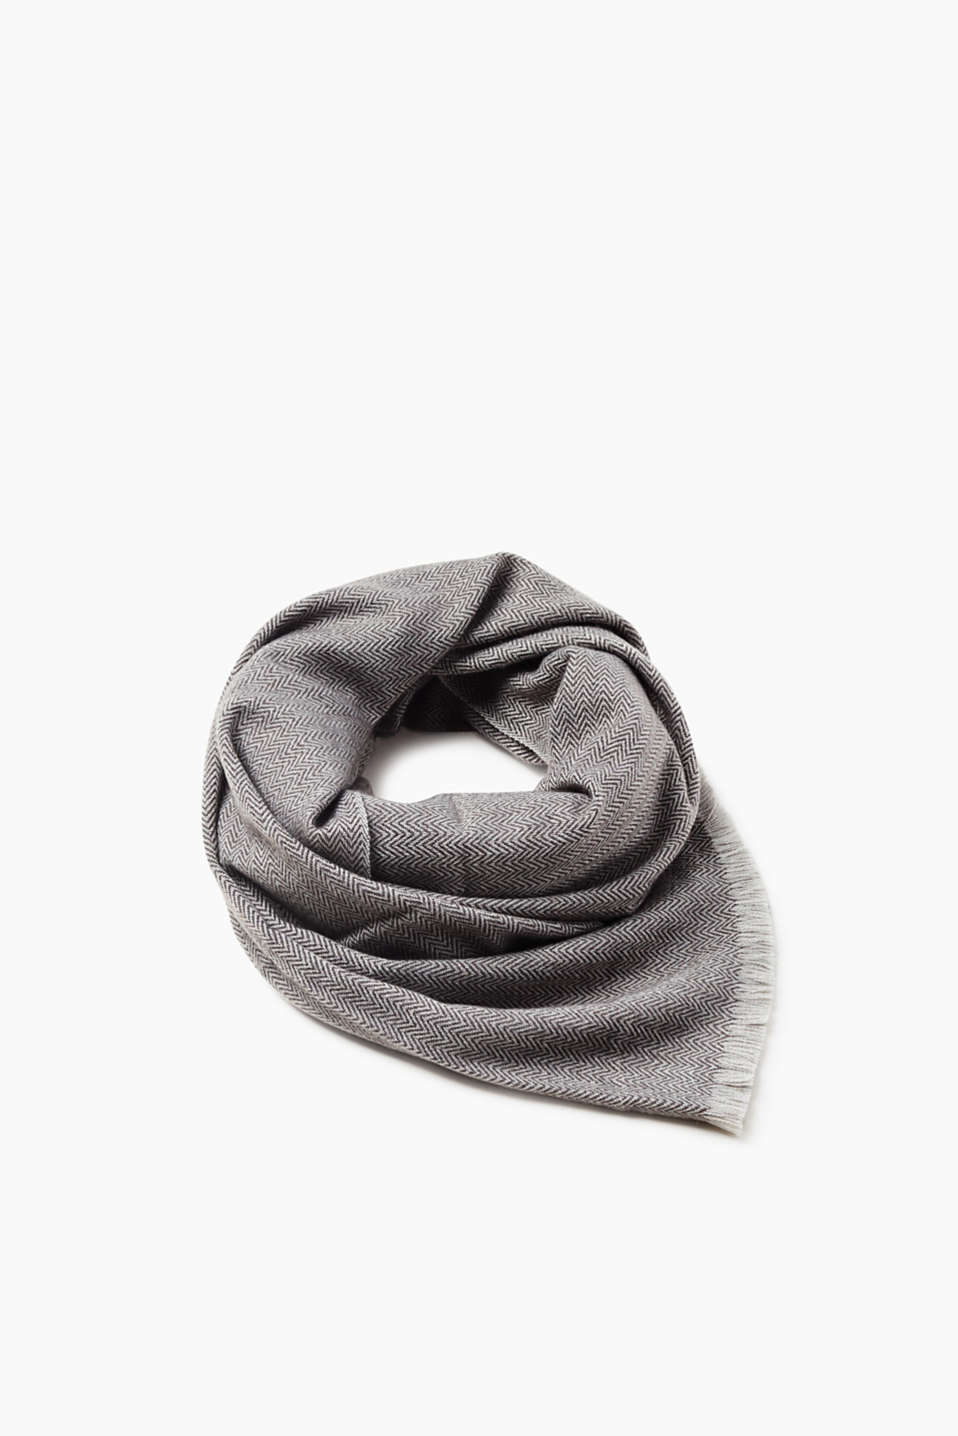 Stylish accessory! This woven scarf with a herringbone pattern is a fashion highlight!